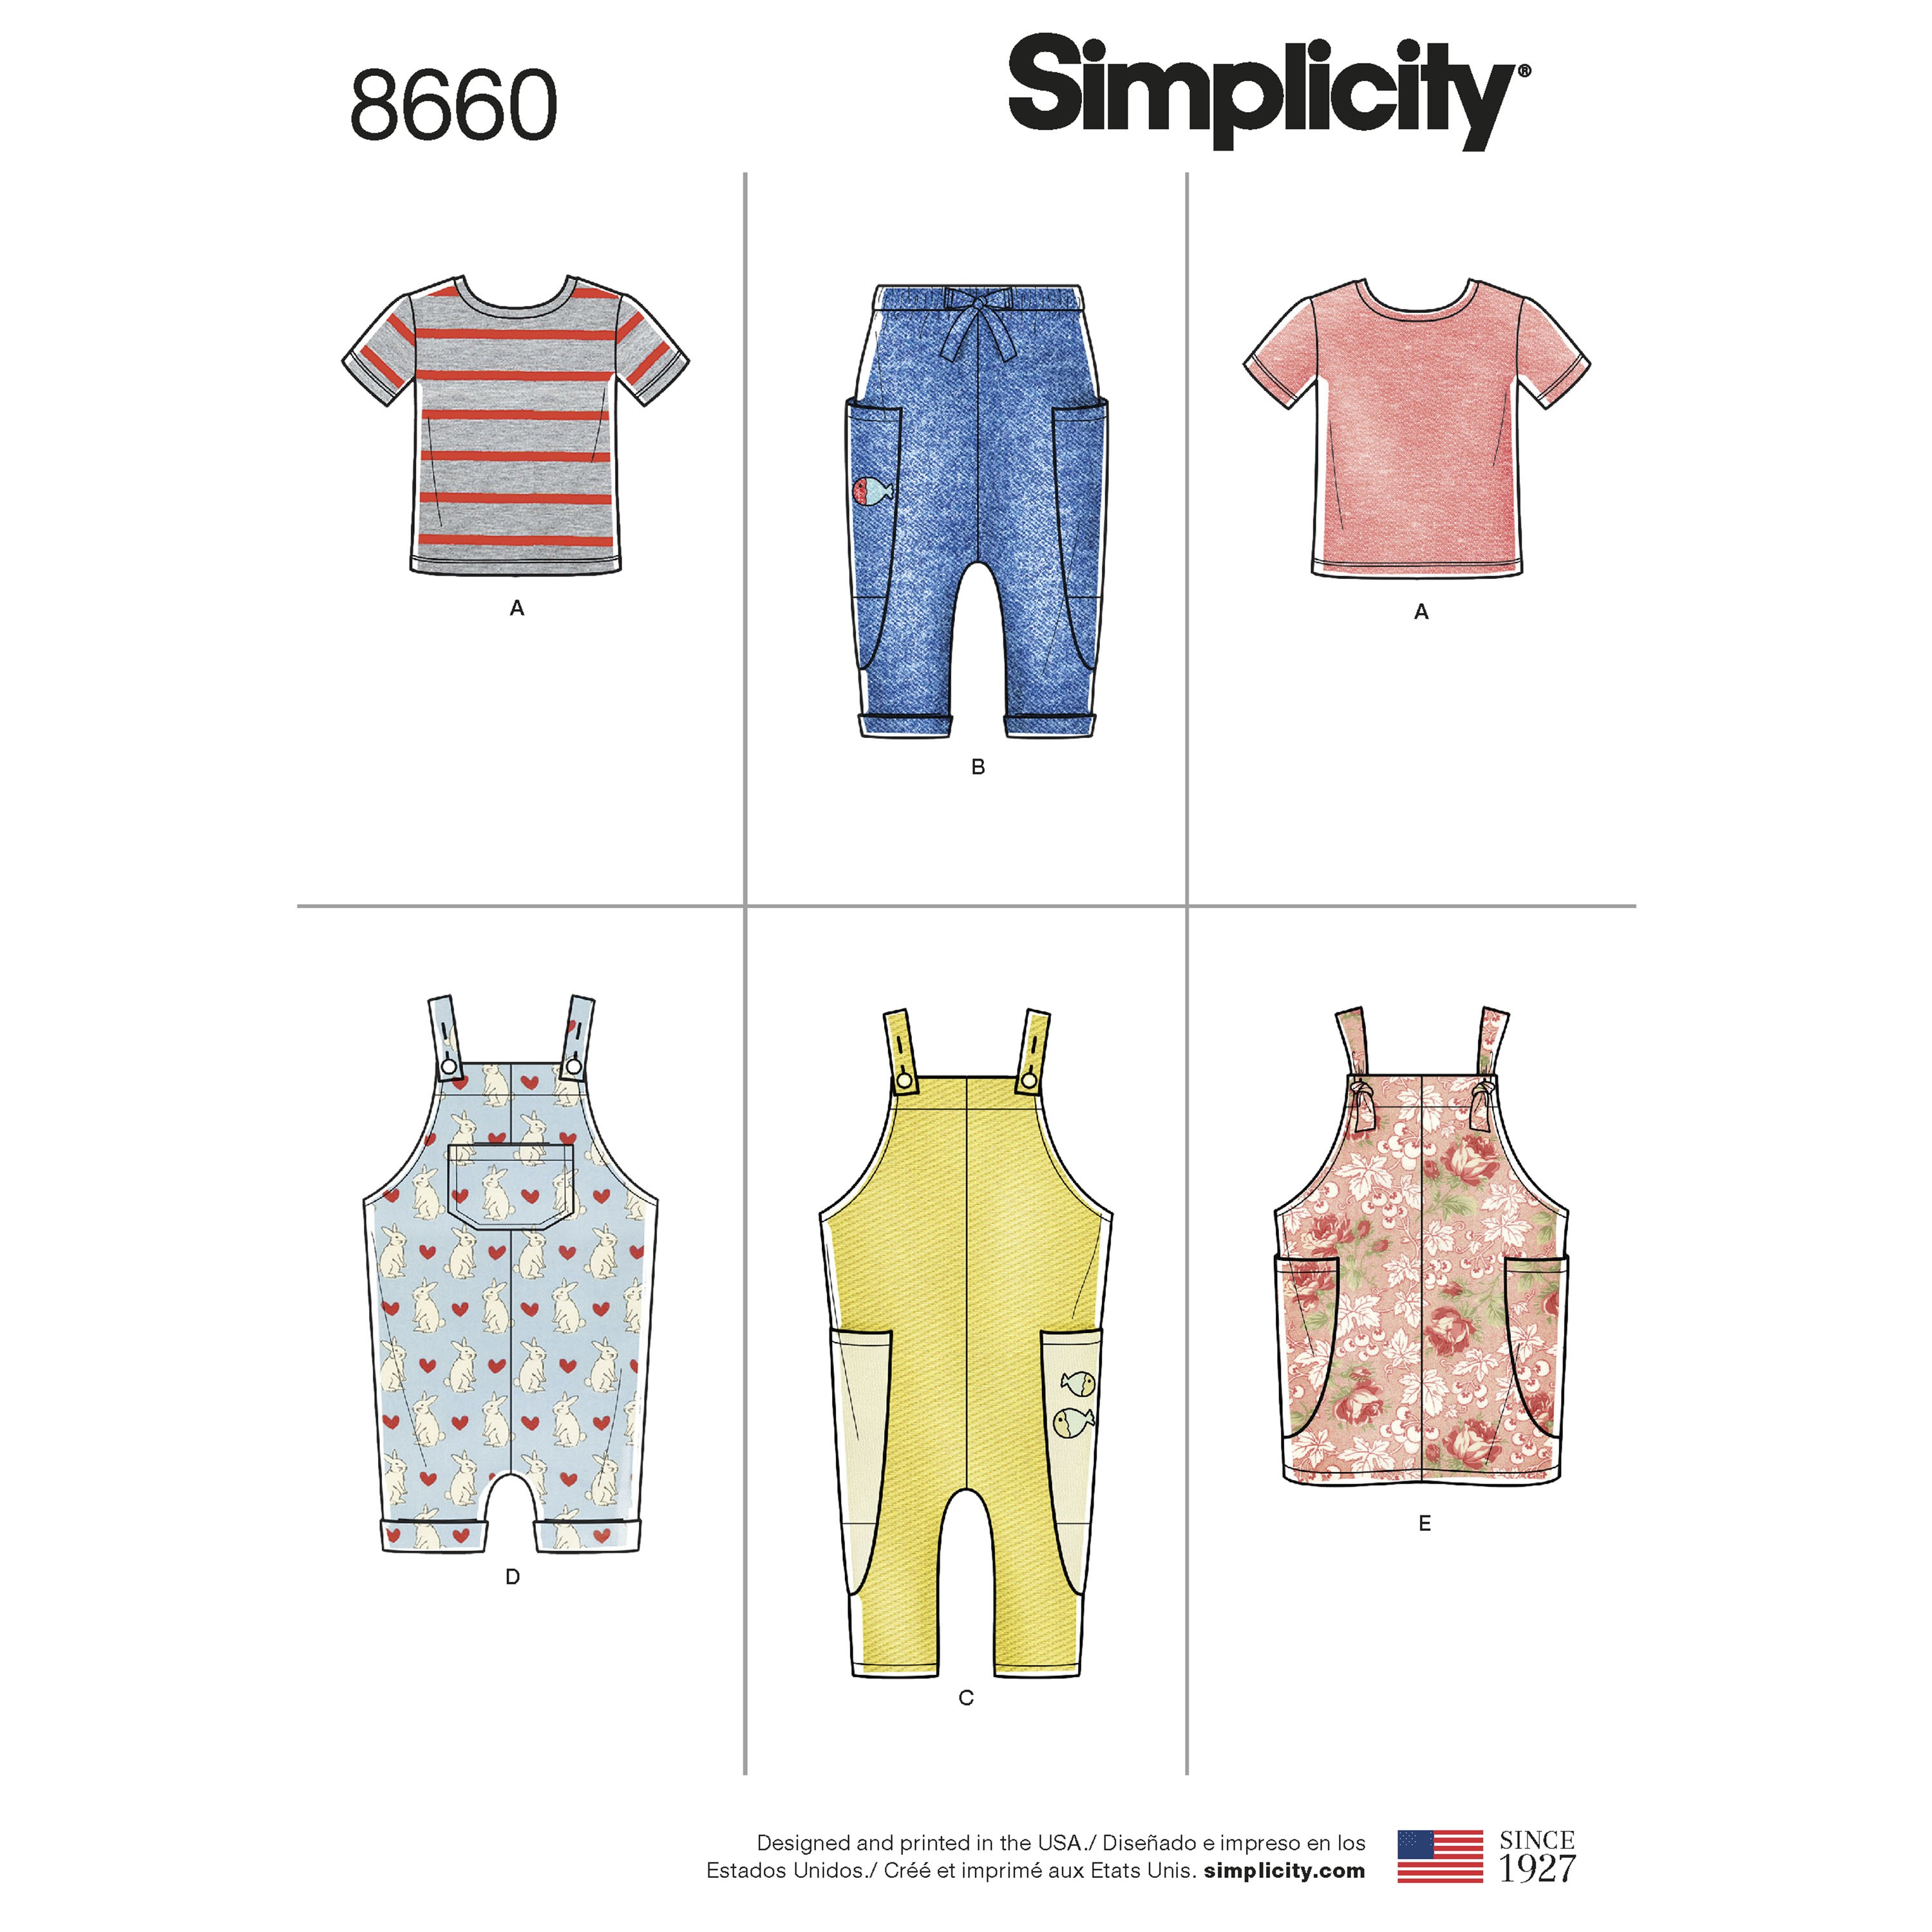 Simplicity Sewing Pattern 8660 Toddlers' Knit Top, Trousers, Jumper & Dungarees